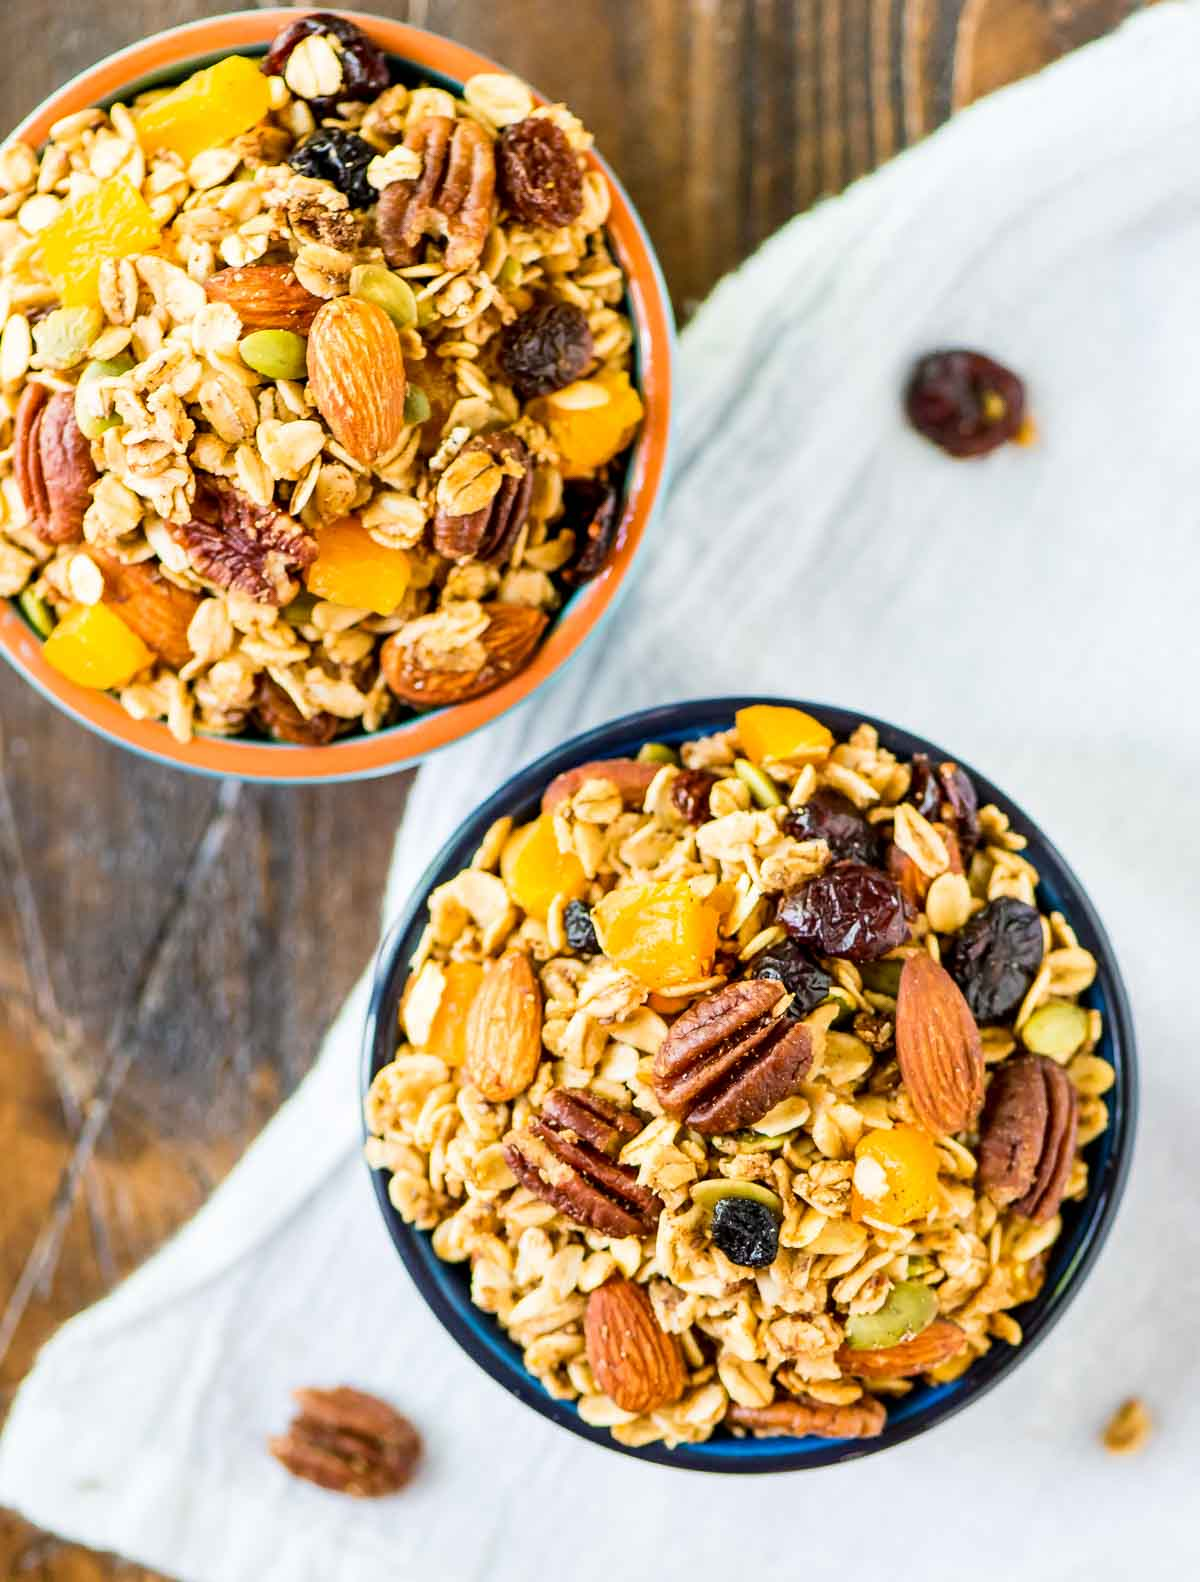 This Crock Pot Granola recipe is the BEST, easiest homemade granola ever! Healthy recipe made with simple ingredients like oatmeal, nuts, and naturally sweetened with maple syrup. {vegan, gluten free, dairy free, clean eating} @wellplated